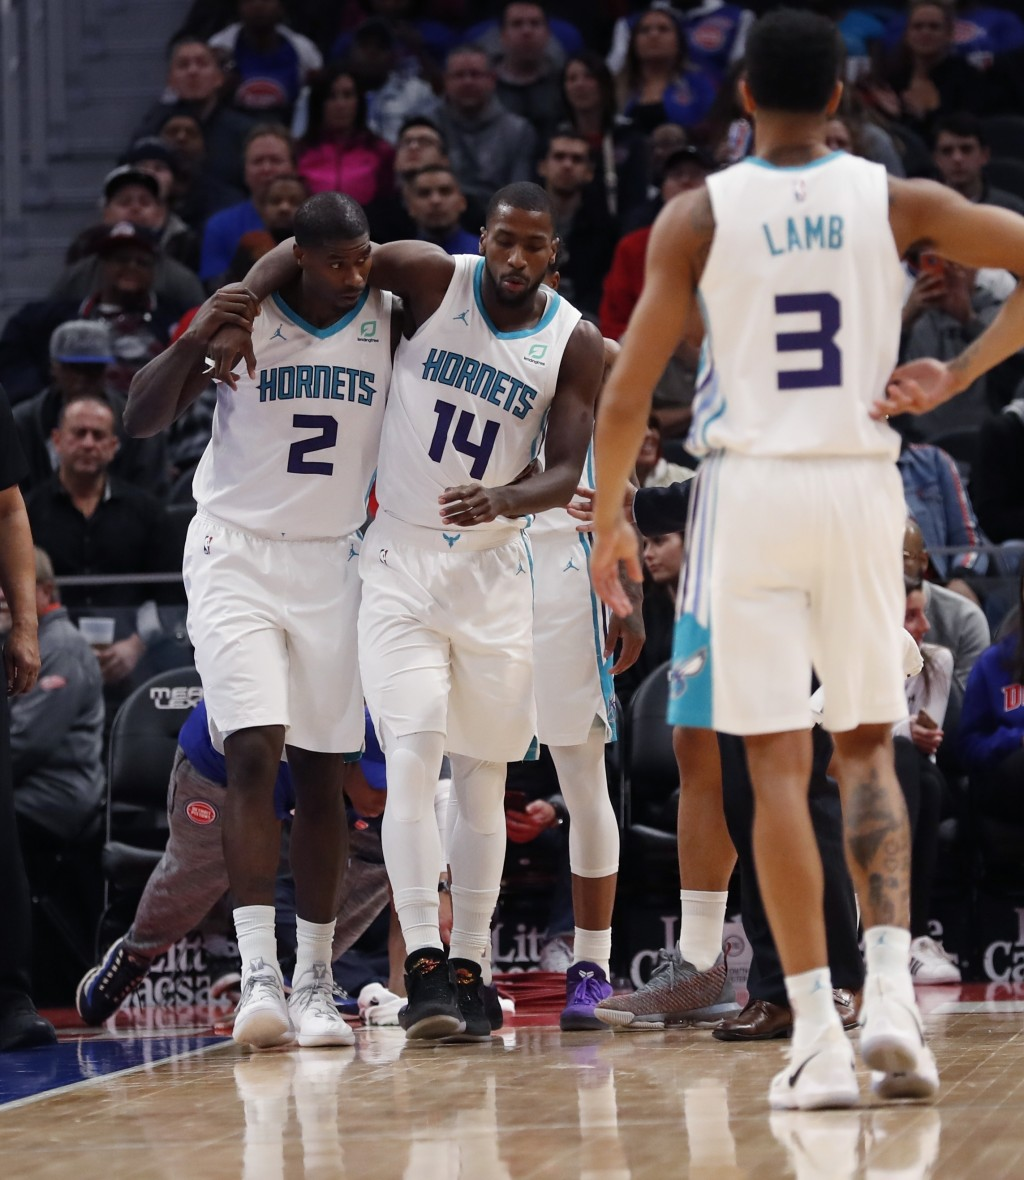 Charlotte Hornets forward Michael Kidd-Gilchrist (14) is helped off the court after a play during the first half of an NBA basketball game against the